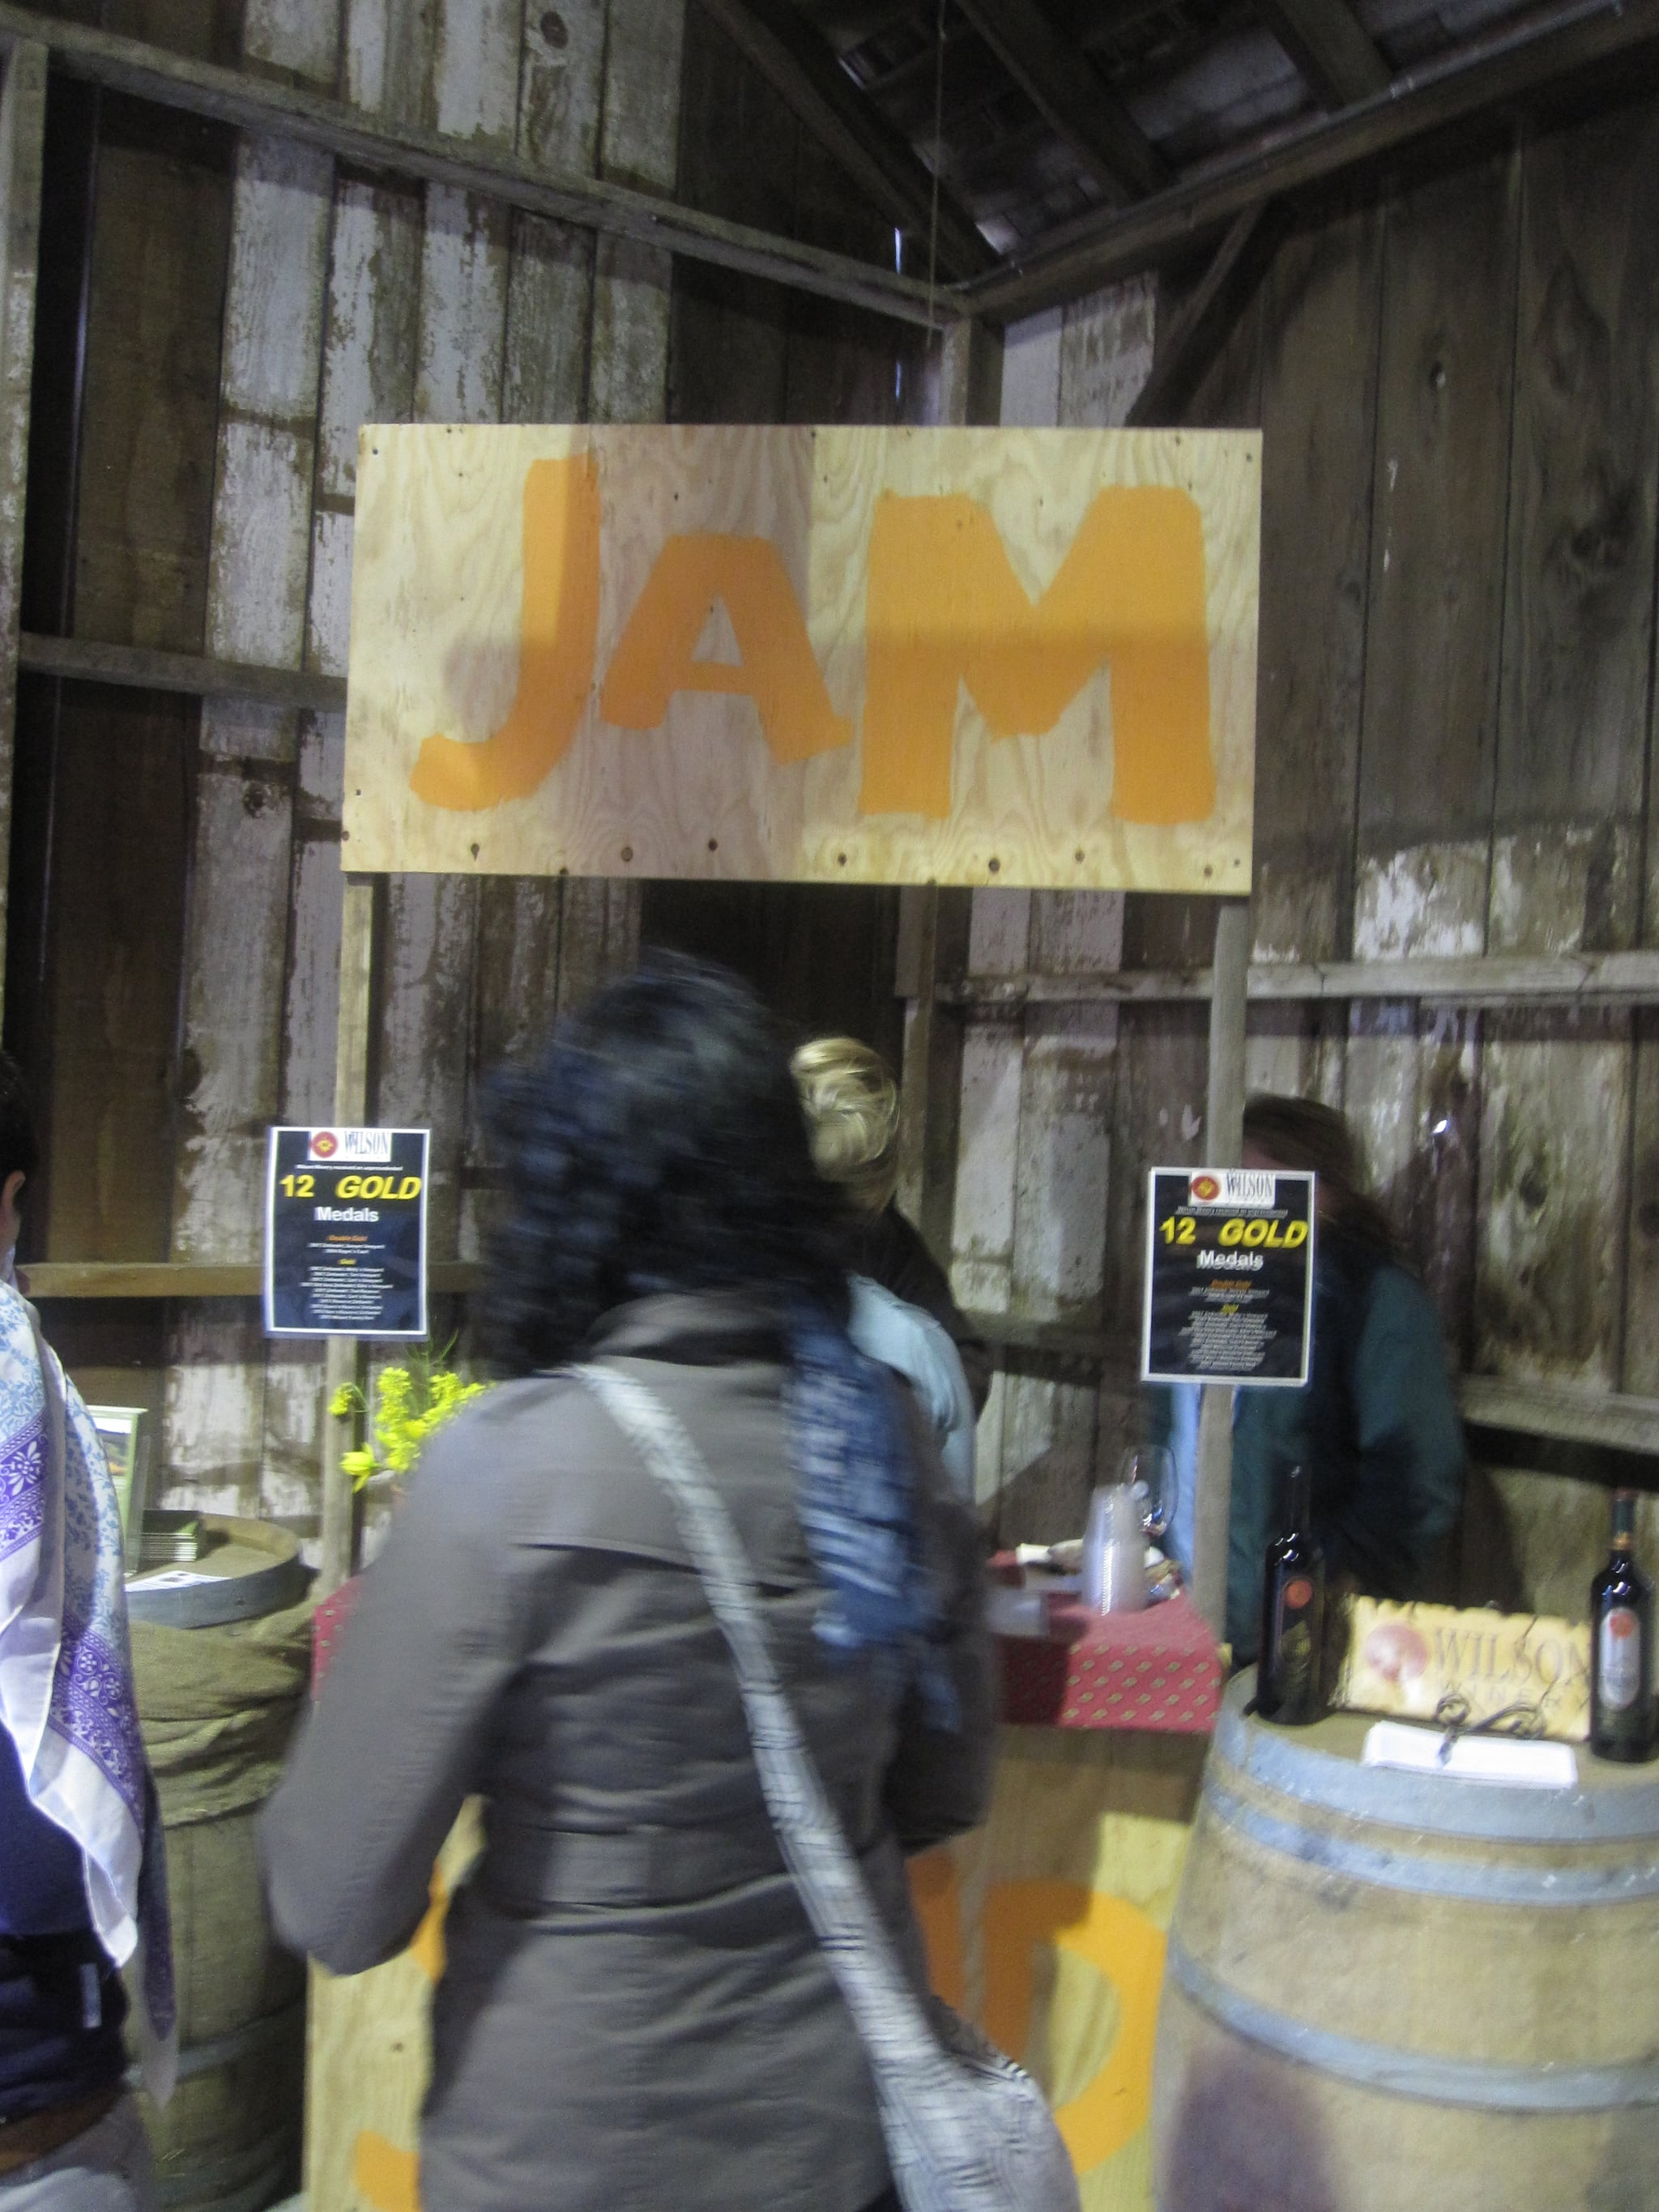 The wine stand was labeled Jam.